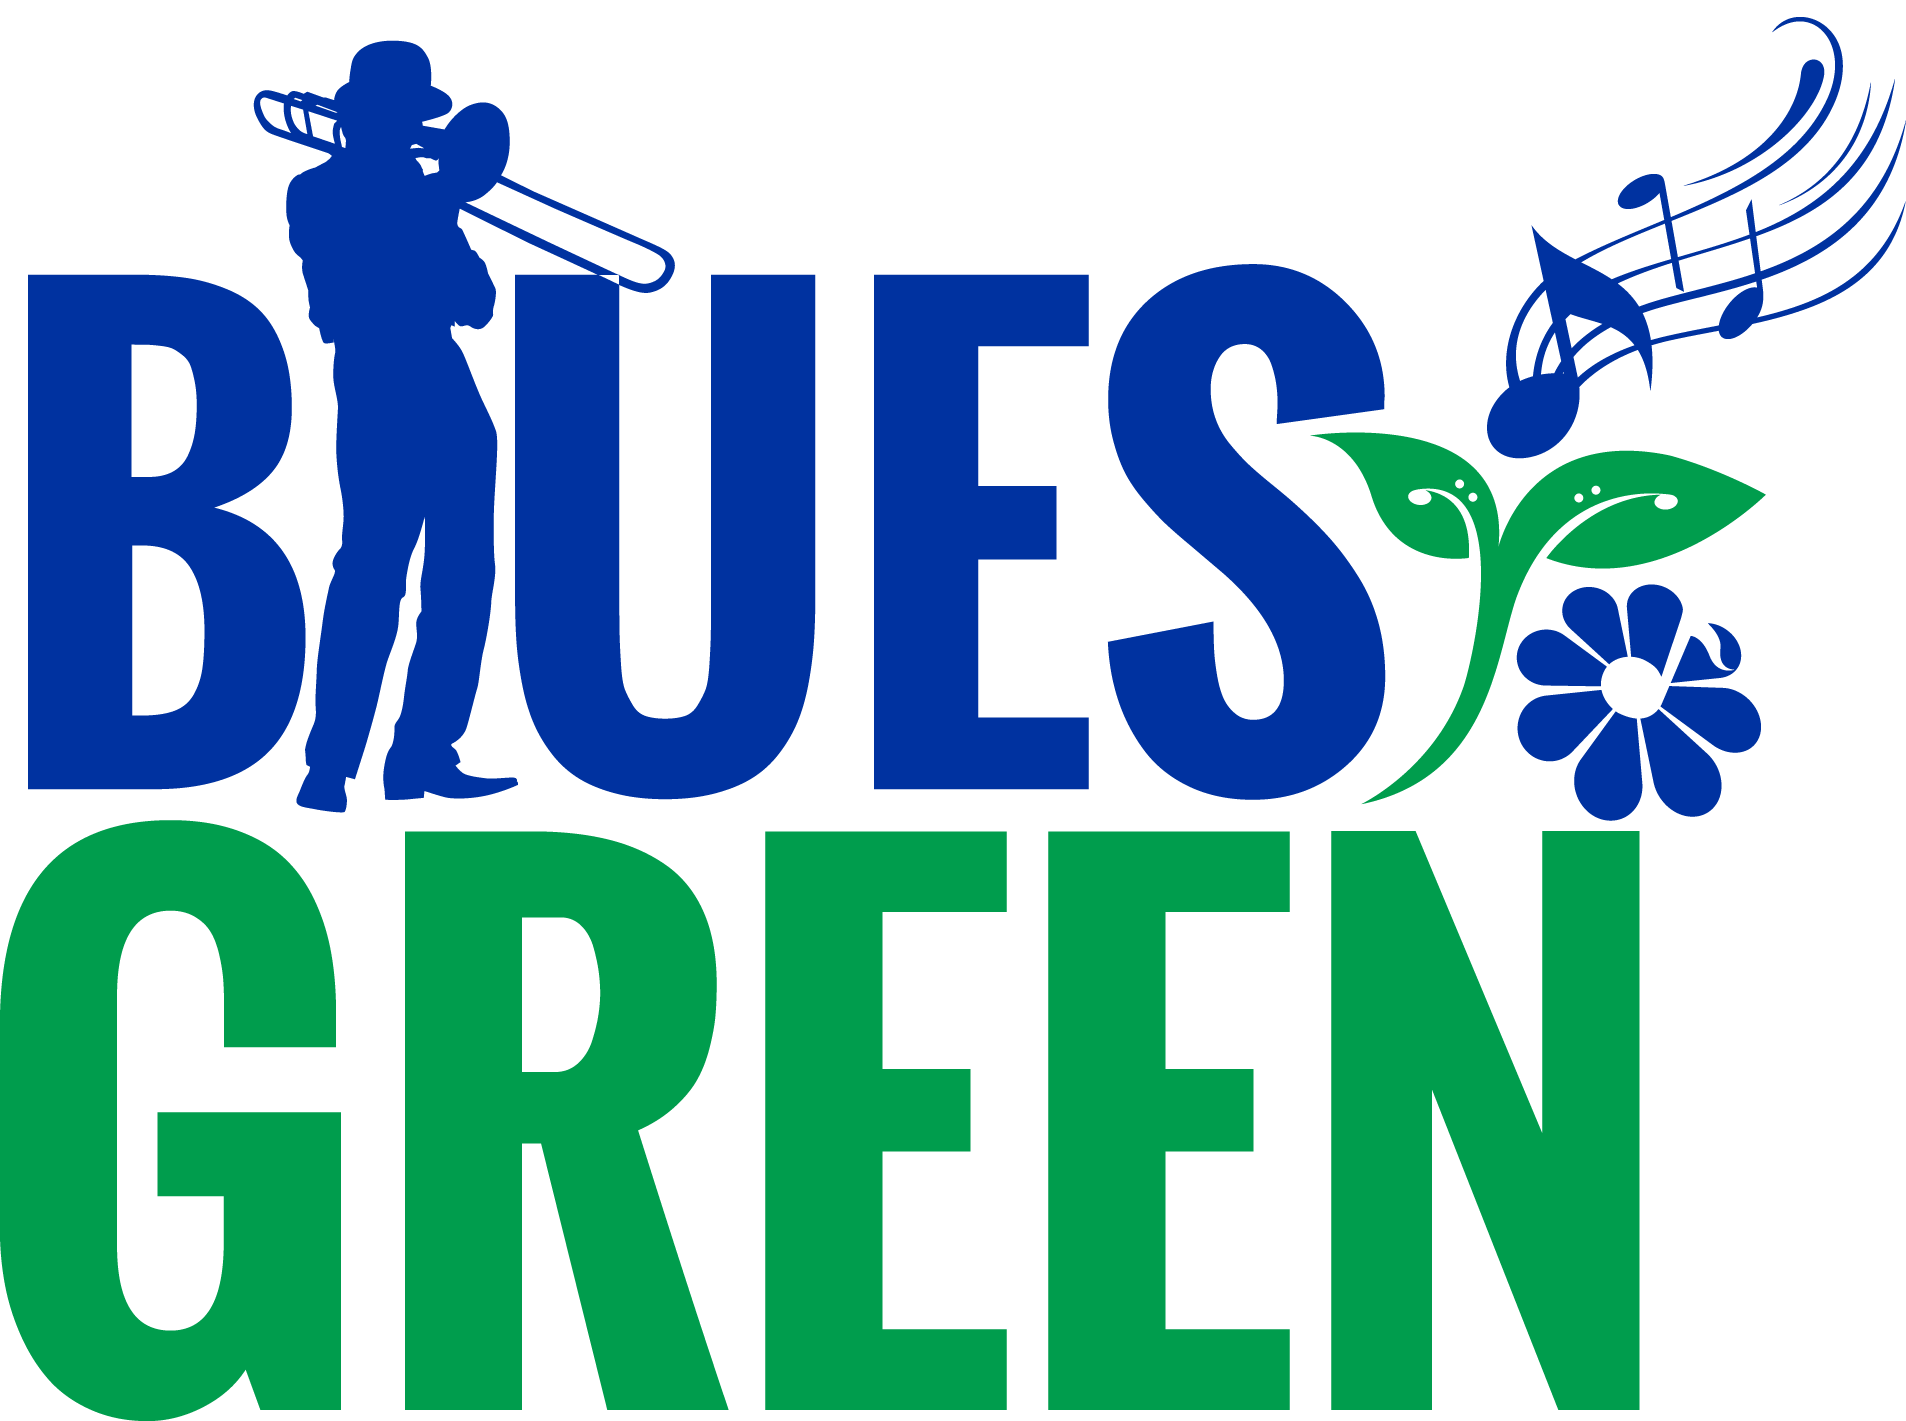 To green logo. Jazz clipart blues music